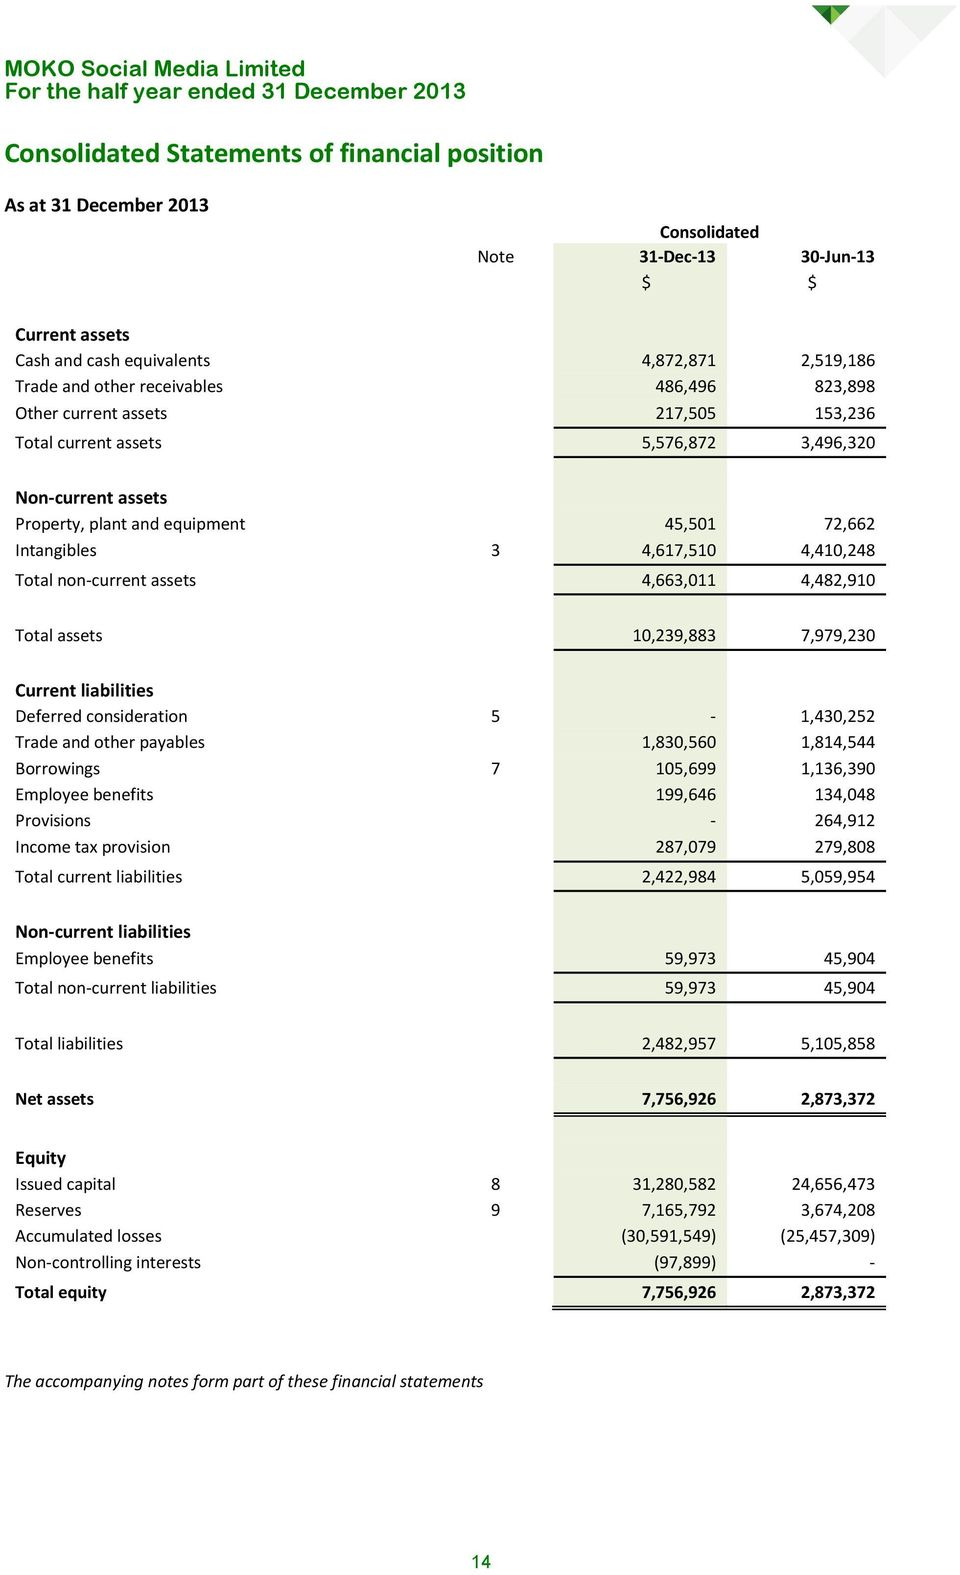 non-current assets 4,663,011 4,482,910 Total assets 10,239,883 7,979,230 Current liabilities Deferred consideration 5-1,430,252 Trade and other payables 1,830,560 1,814,544 Borrowings 7 105,699